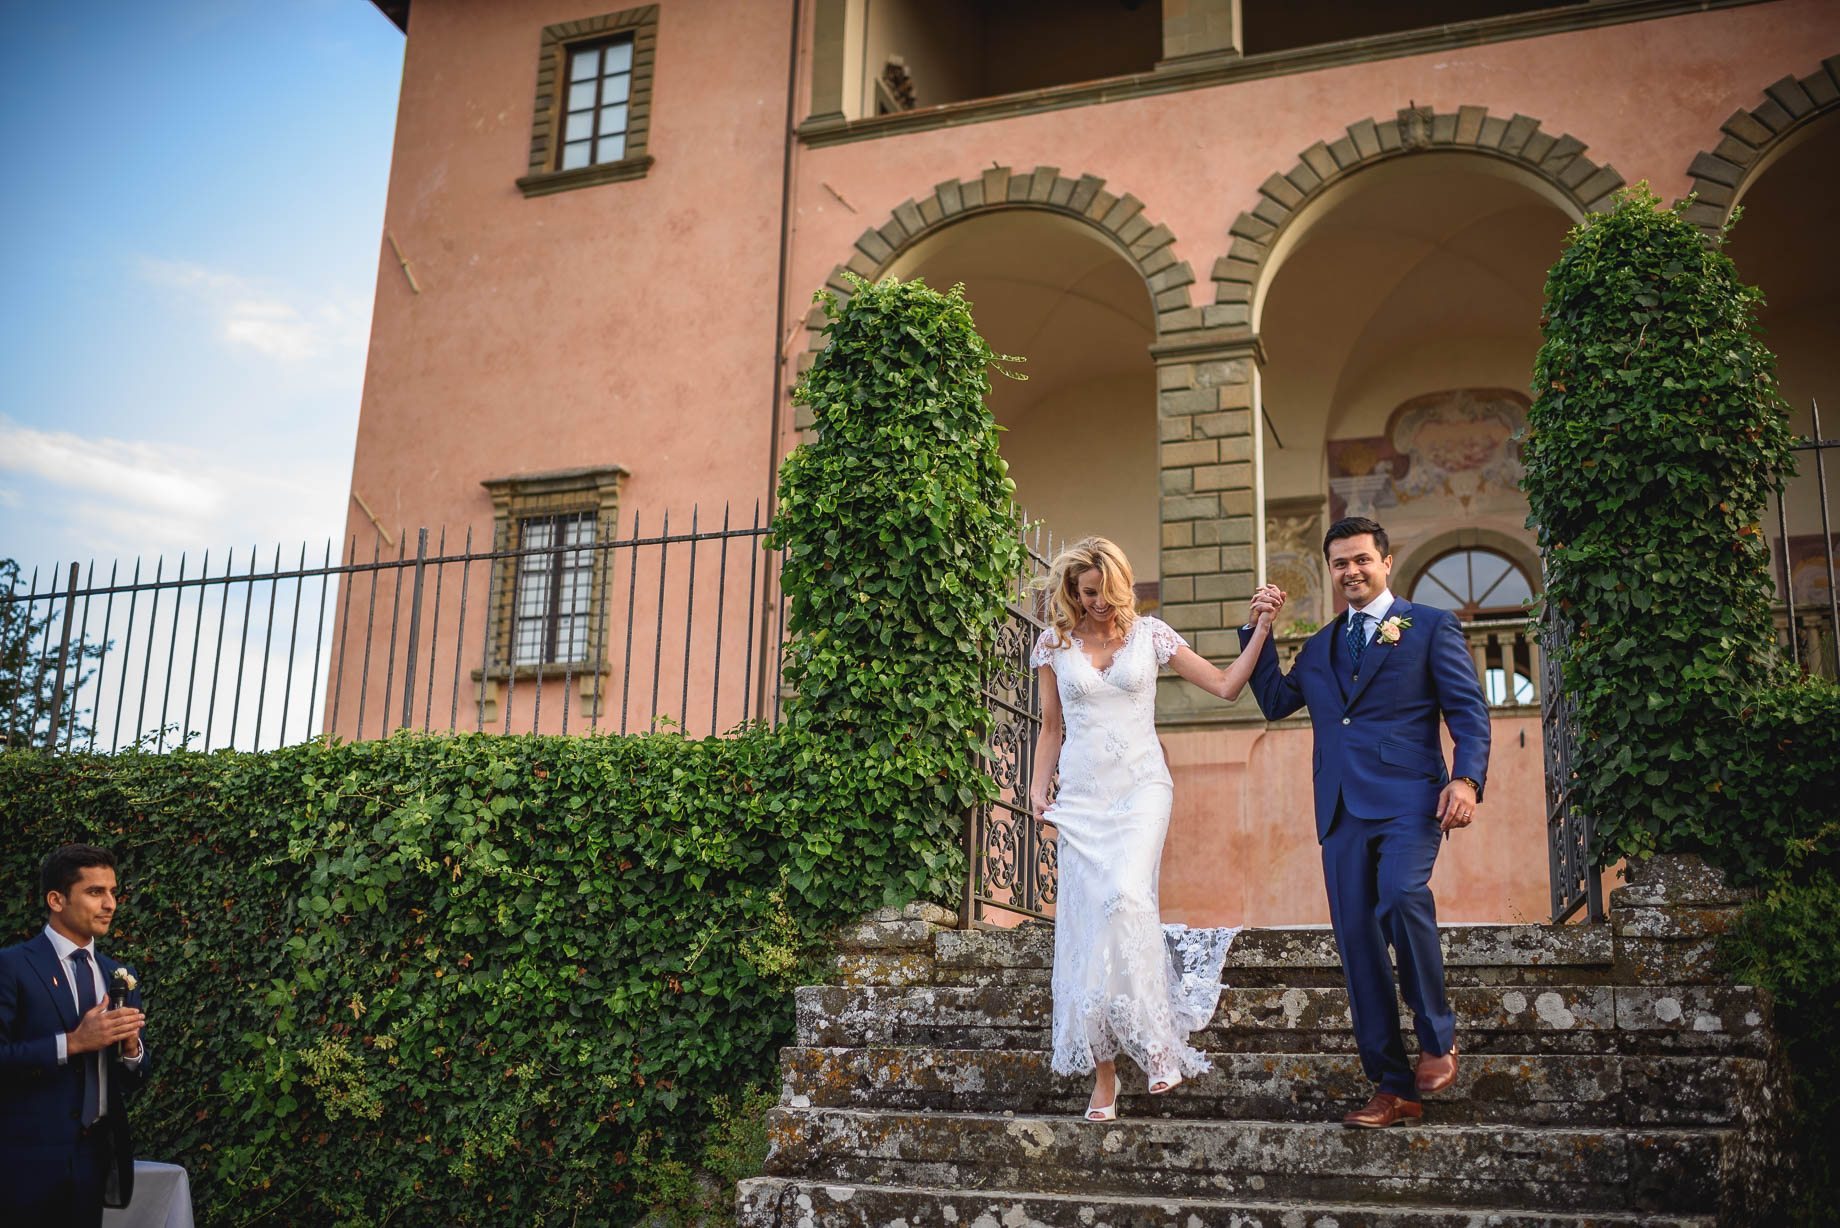 Tuscany wedding photography - Roisin and Moubin - Guy Collier Photography (166 of 251)